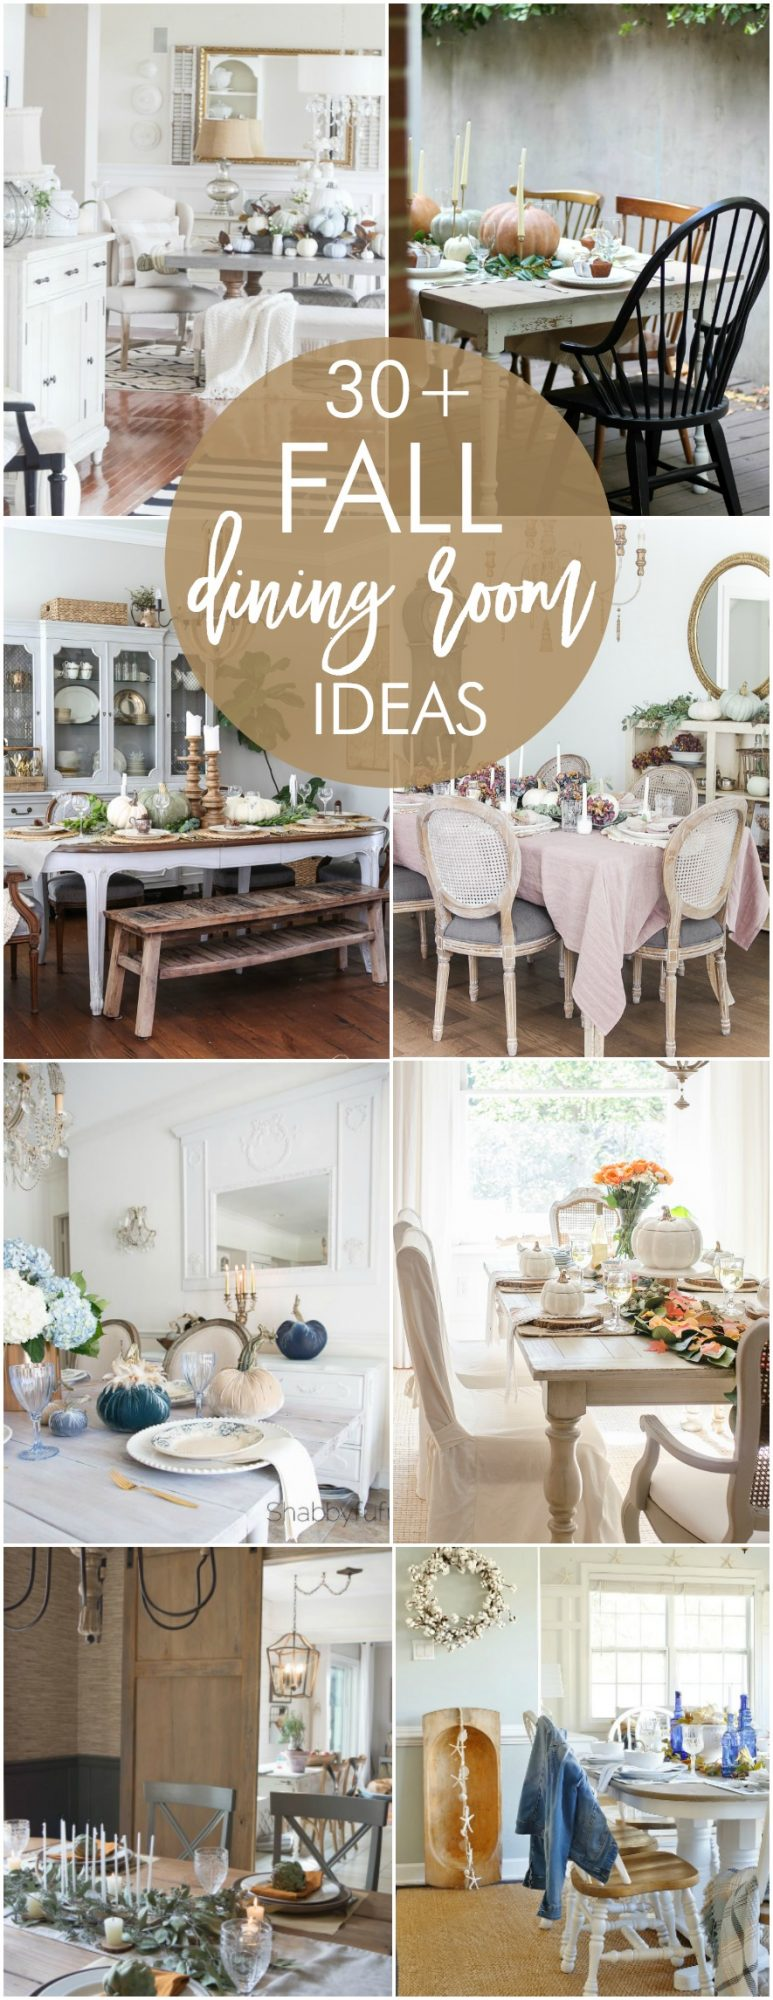 https://www.homestoriesatoz.com/wp-content/uploads/2017/09/fall-dining-room-ideas-autumn-decorating-dining-room-773x2000.jpg